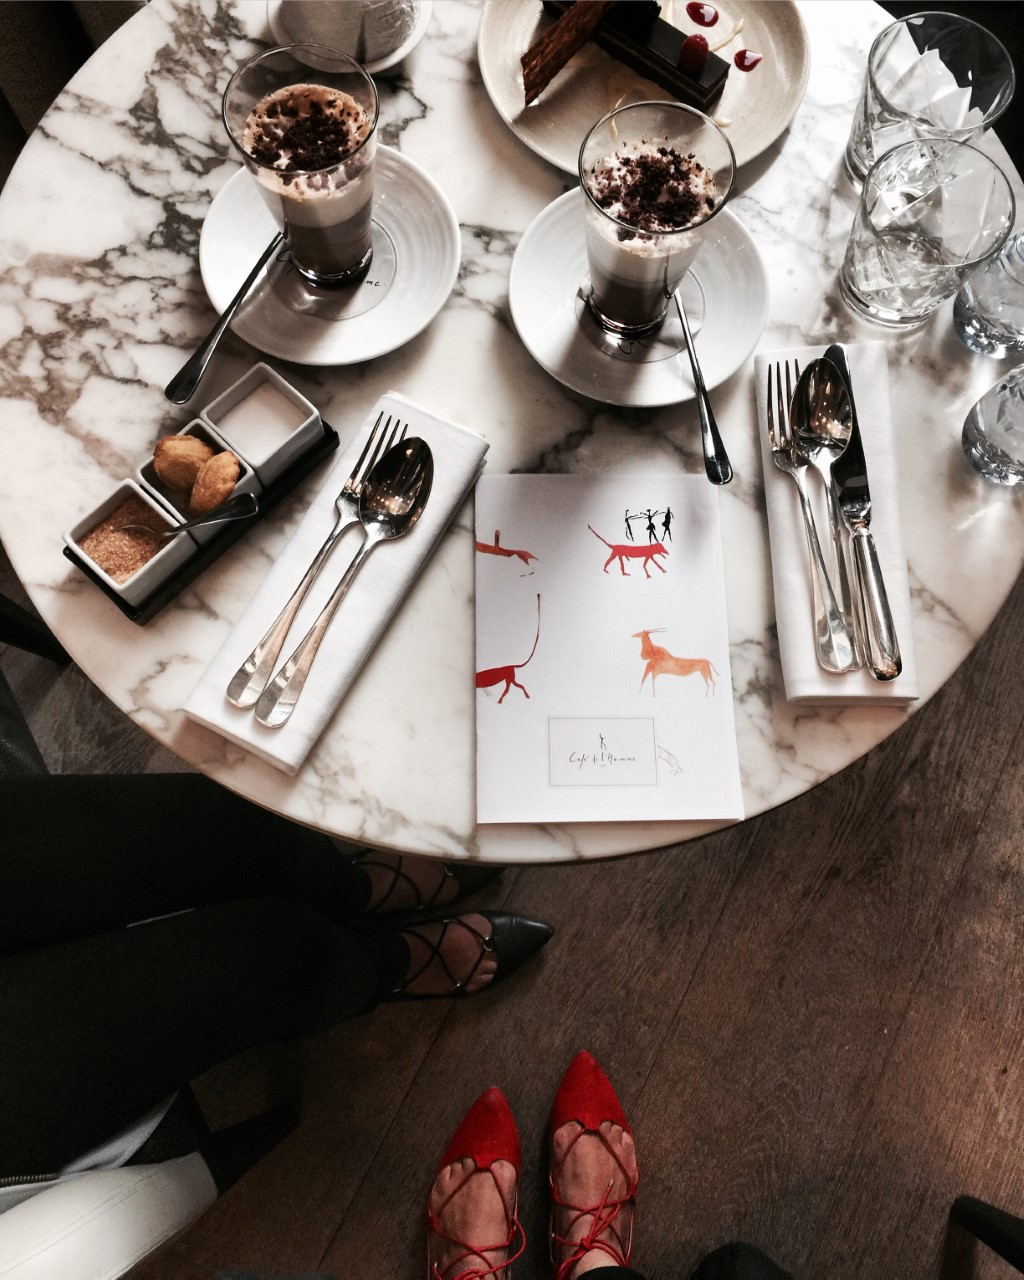 CAFE D L'HOMME - A beautifully decorated art deco cafe with stunning views of Eiffel Tower, while sipping on your latte.